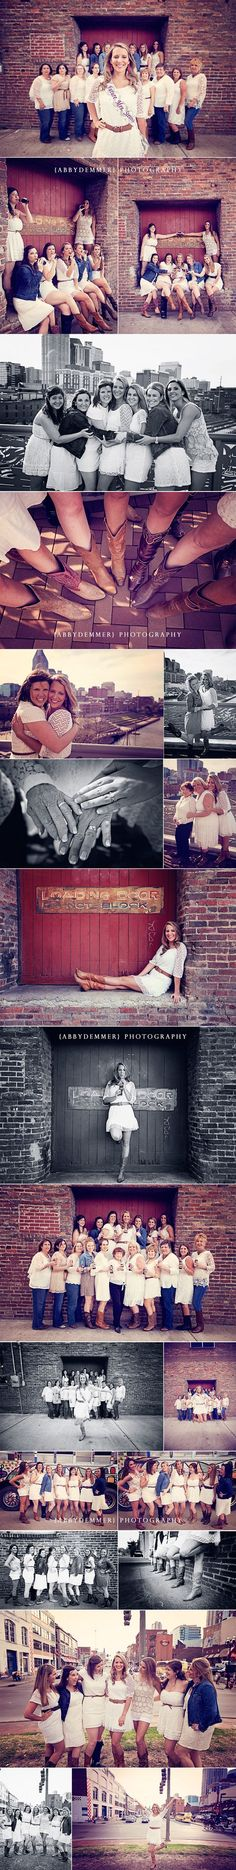 Ideas for Bachelorette photos before the wedding now bookingentertainment com - Pingram - pictures for you Britt Bachelorette, Bachelorette Party Planning, Bachelorette Weekend, Nashville Photographers, Before Wedding, Nashville Wedding, Foto Pose, Party Photos, Engagement Couple